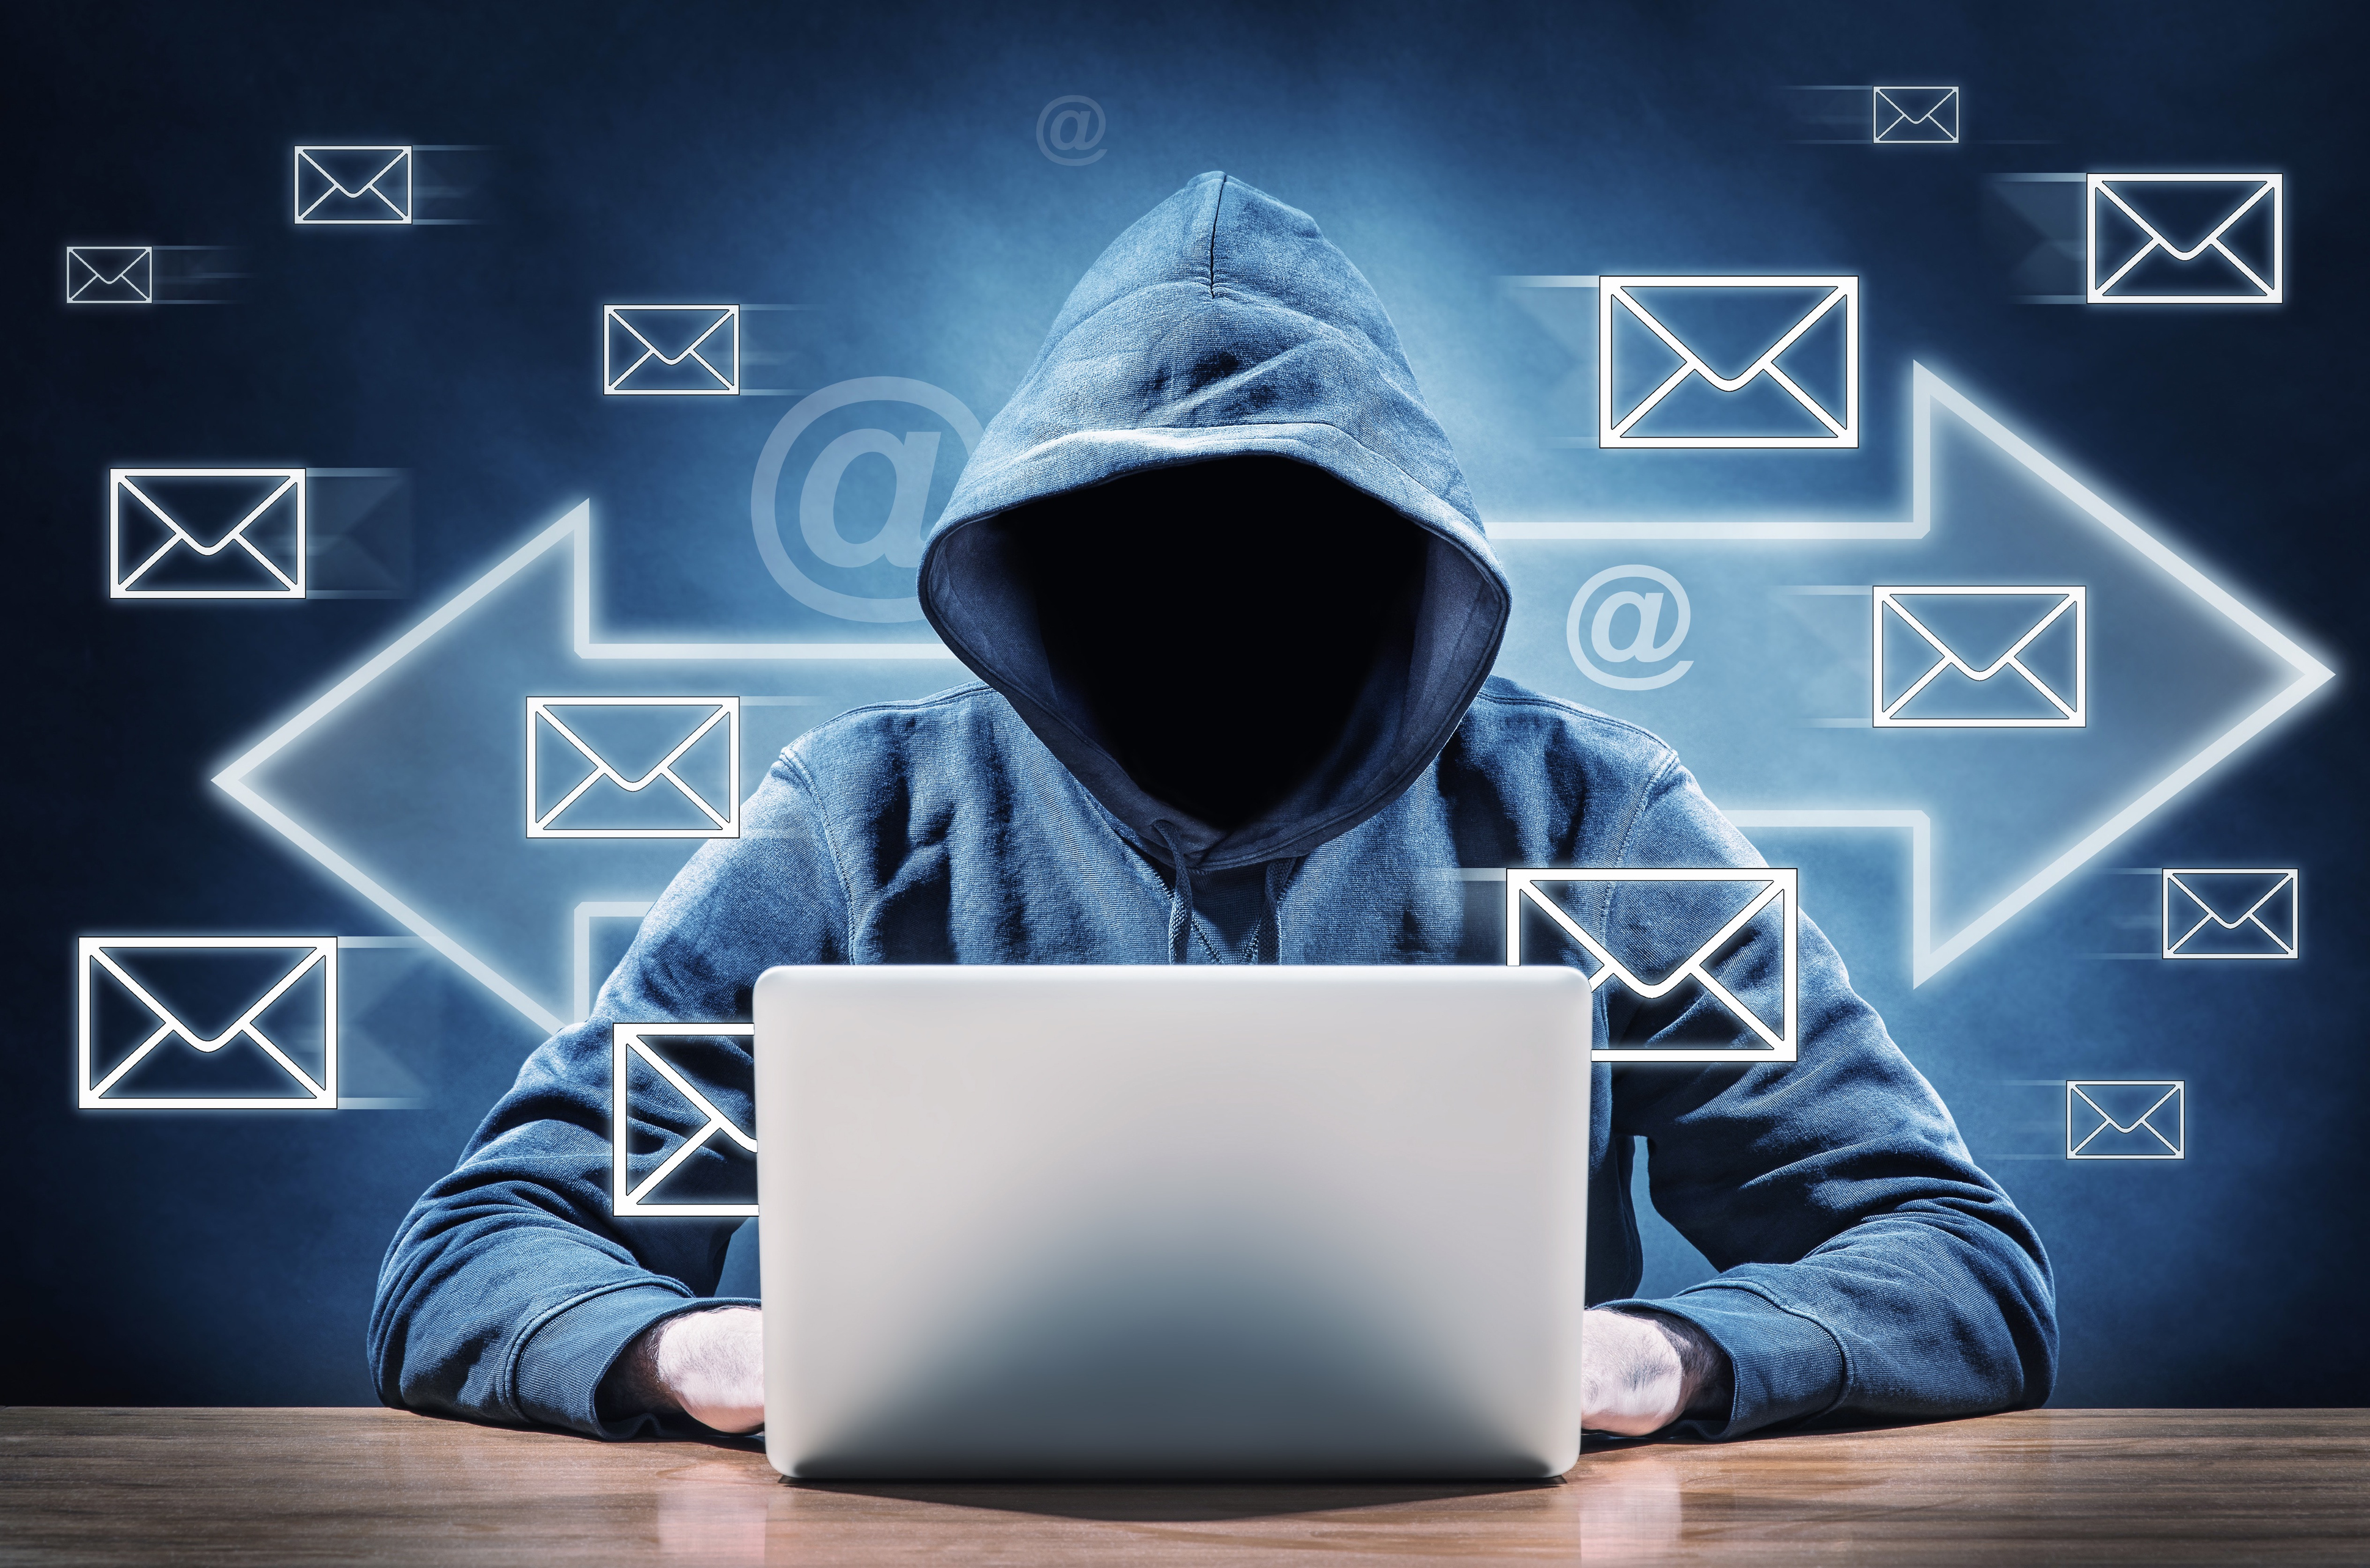 What are the dangers with my email being spoofed?